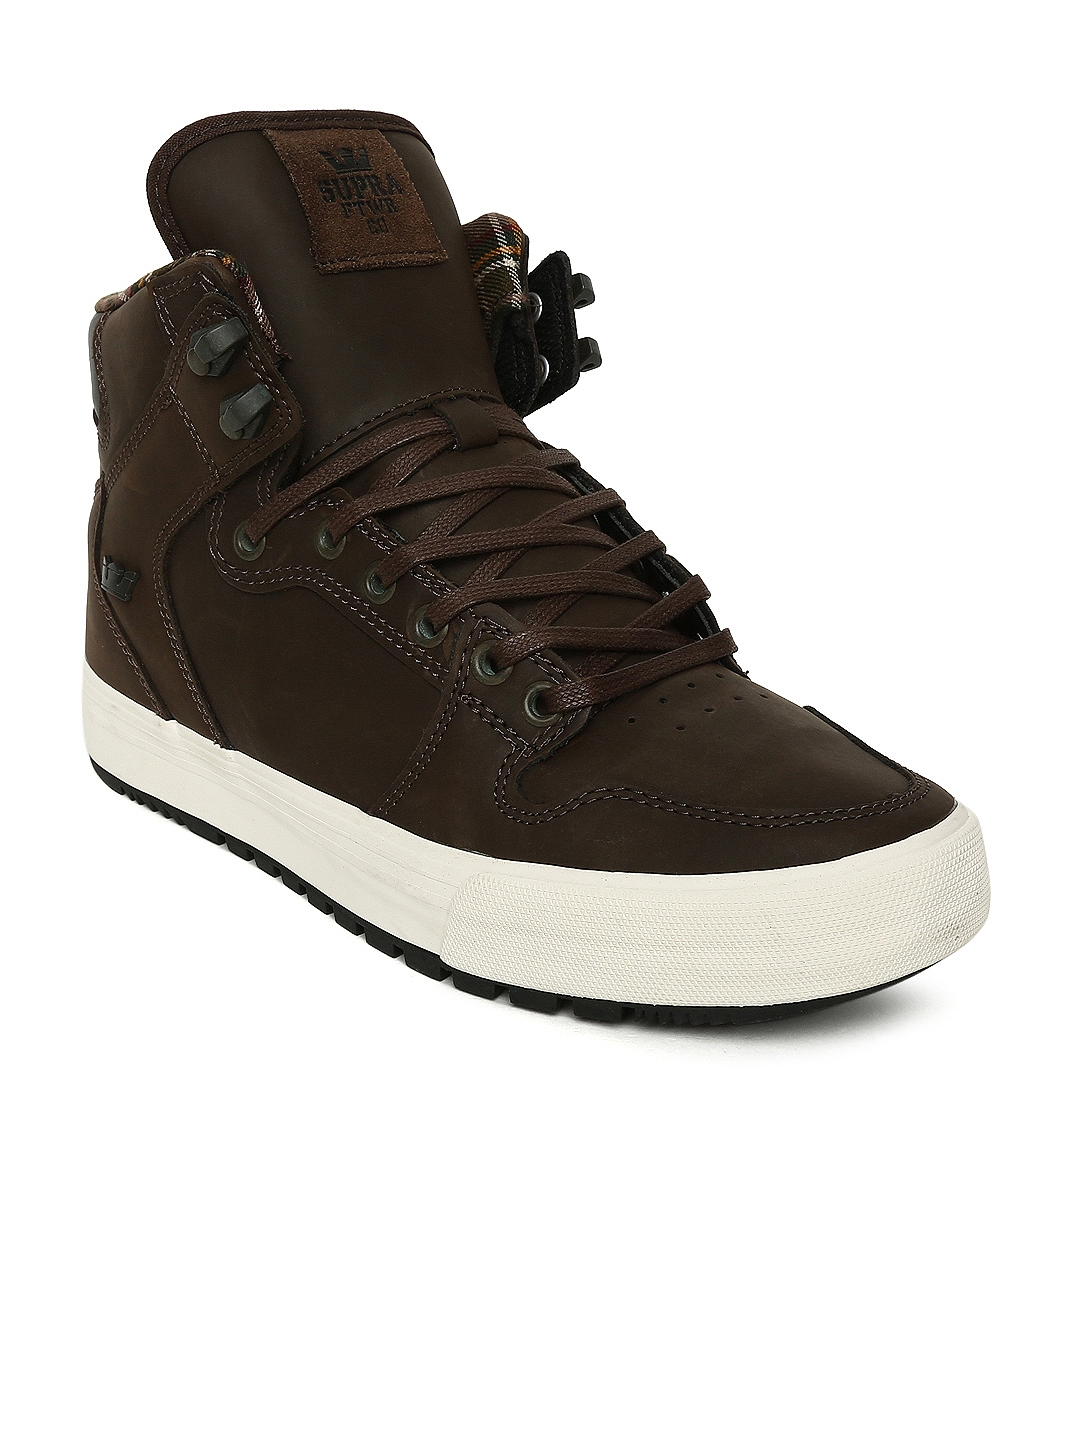 f731423eb24 Buy Supra Men Brown Solid Leather Vaider CW High Top Sneakers ...